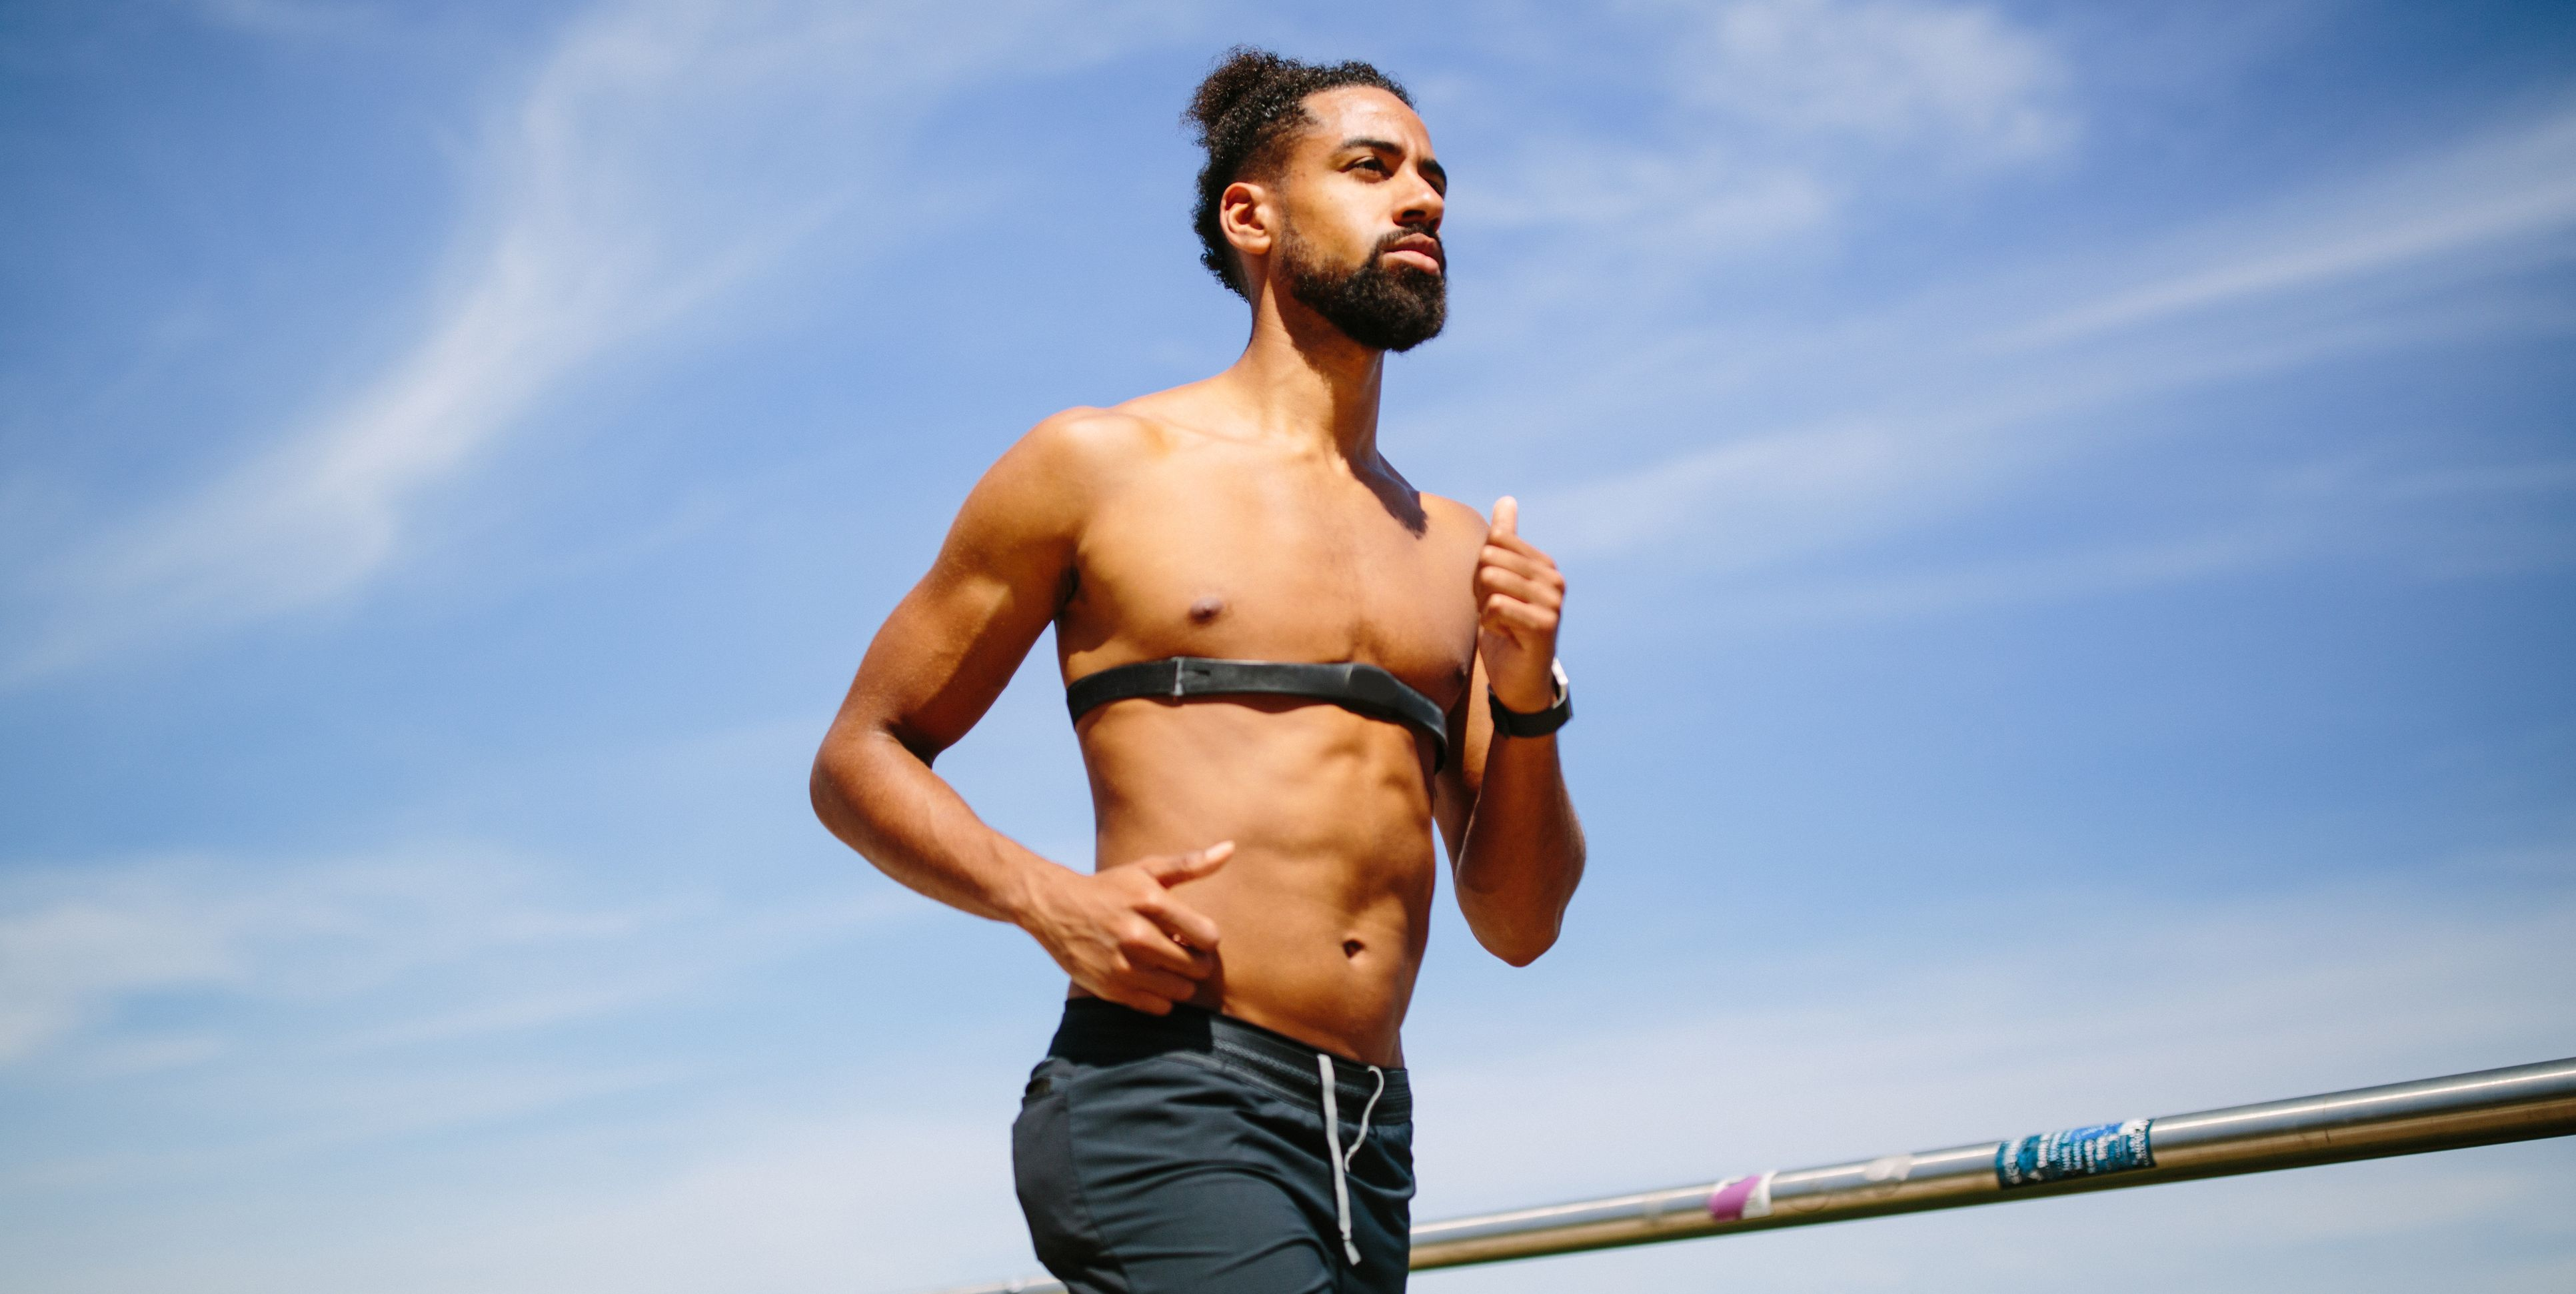 Man running with heart rate monitor